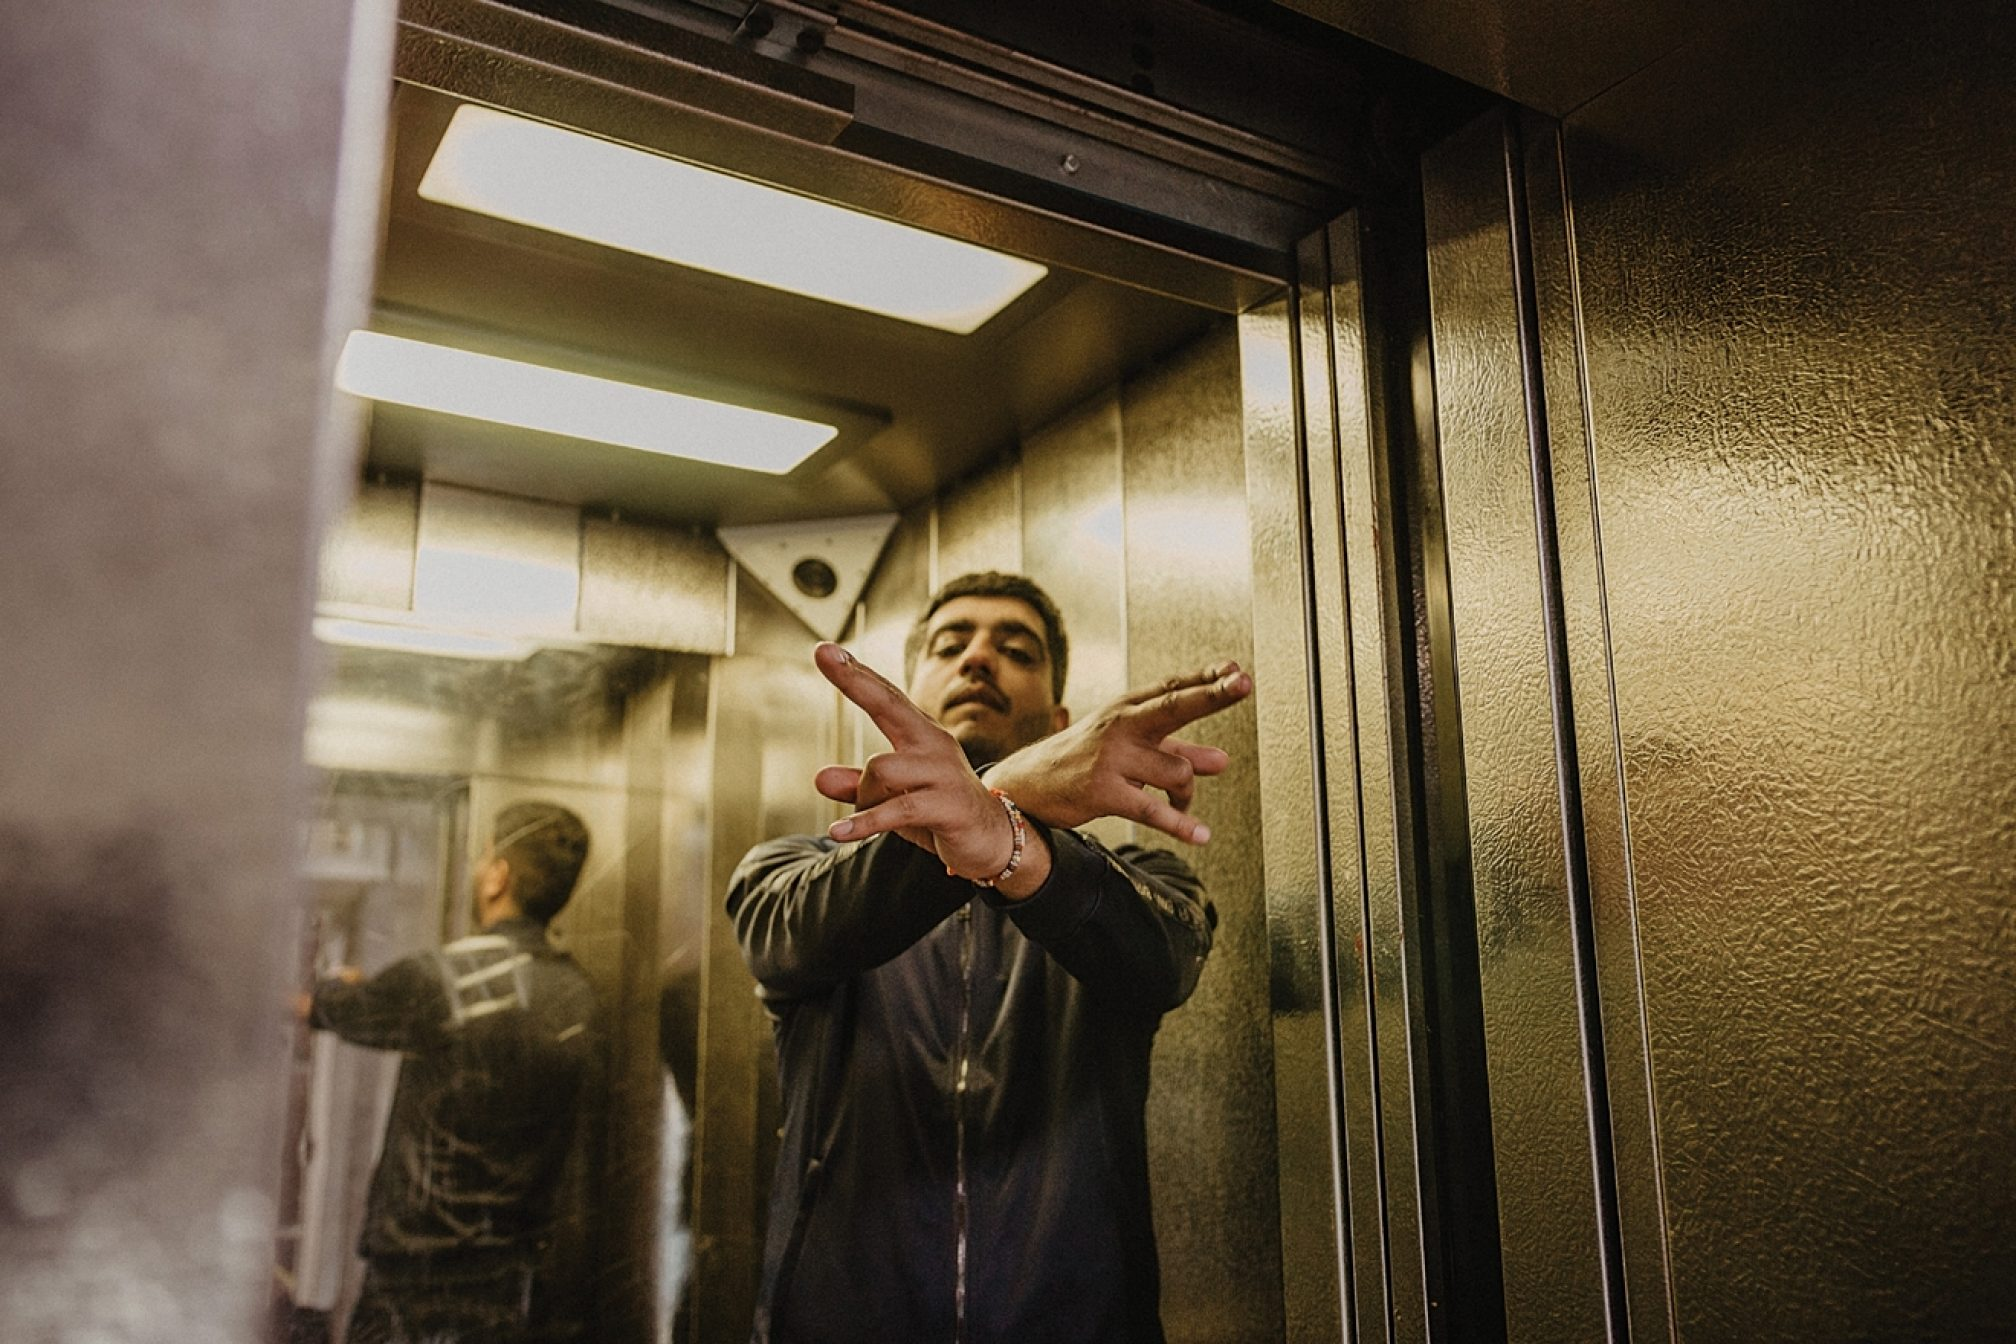 Steel Banglez is the one-man production powerhouse behind the new